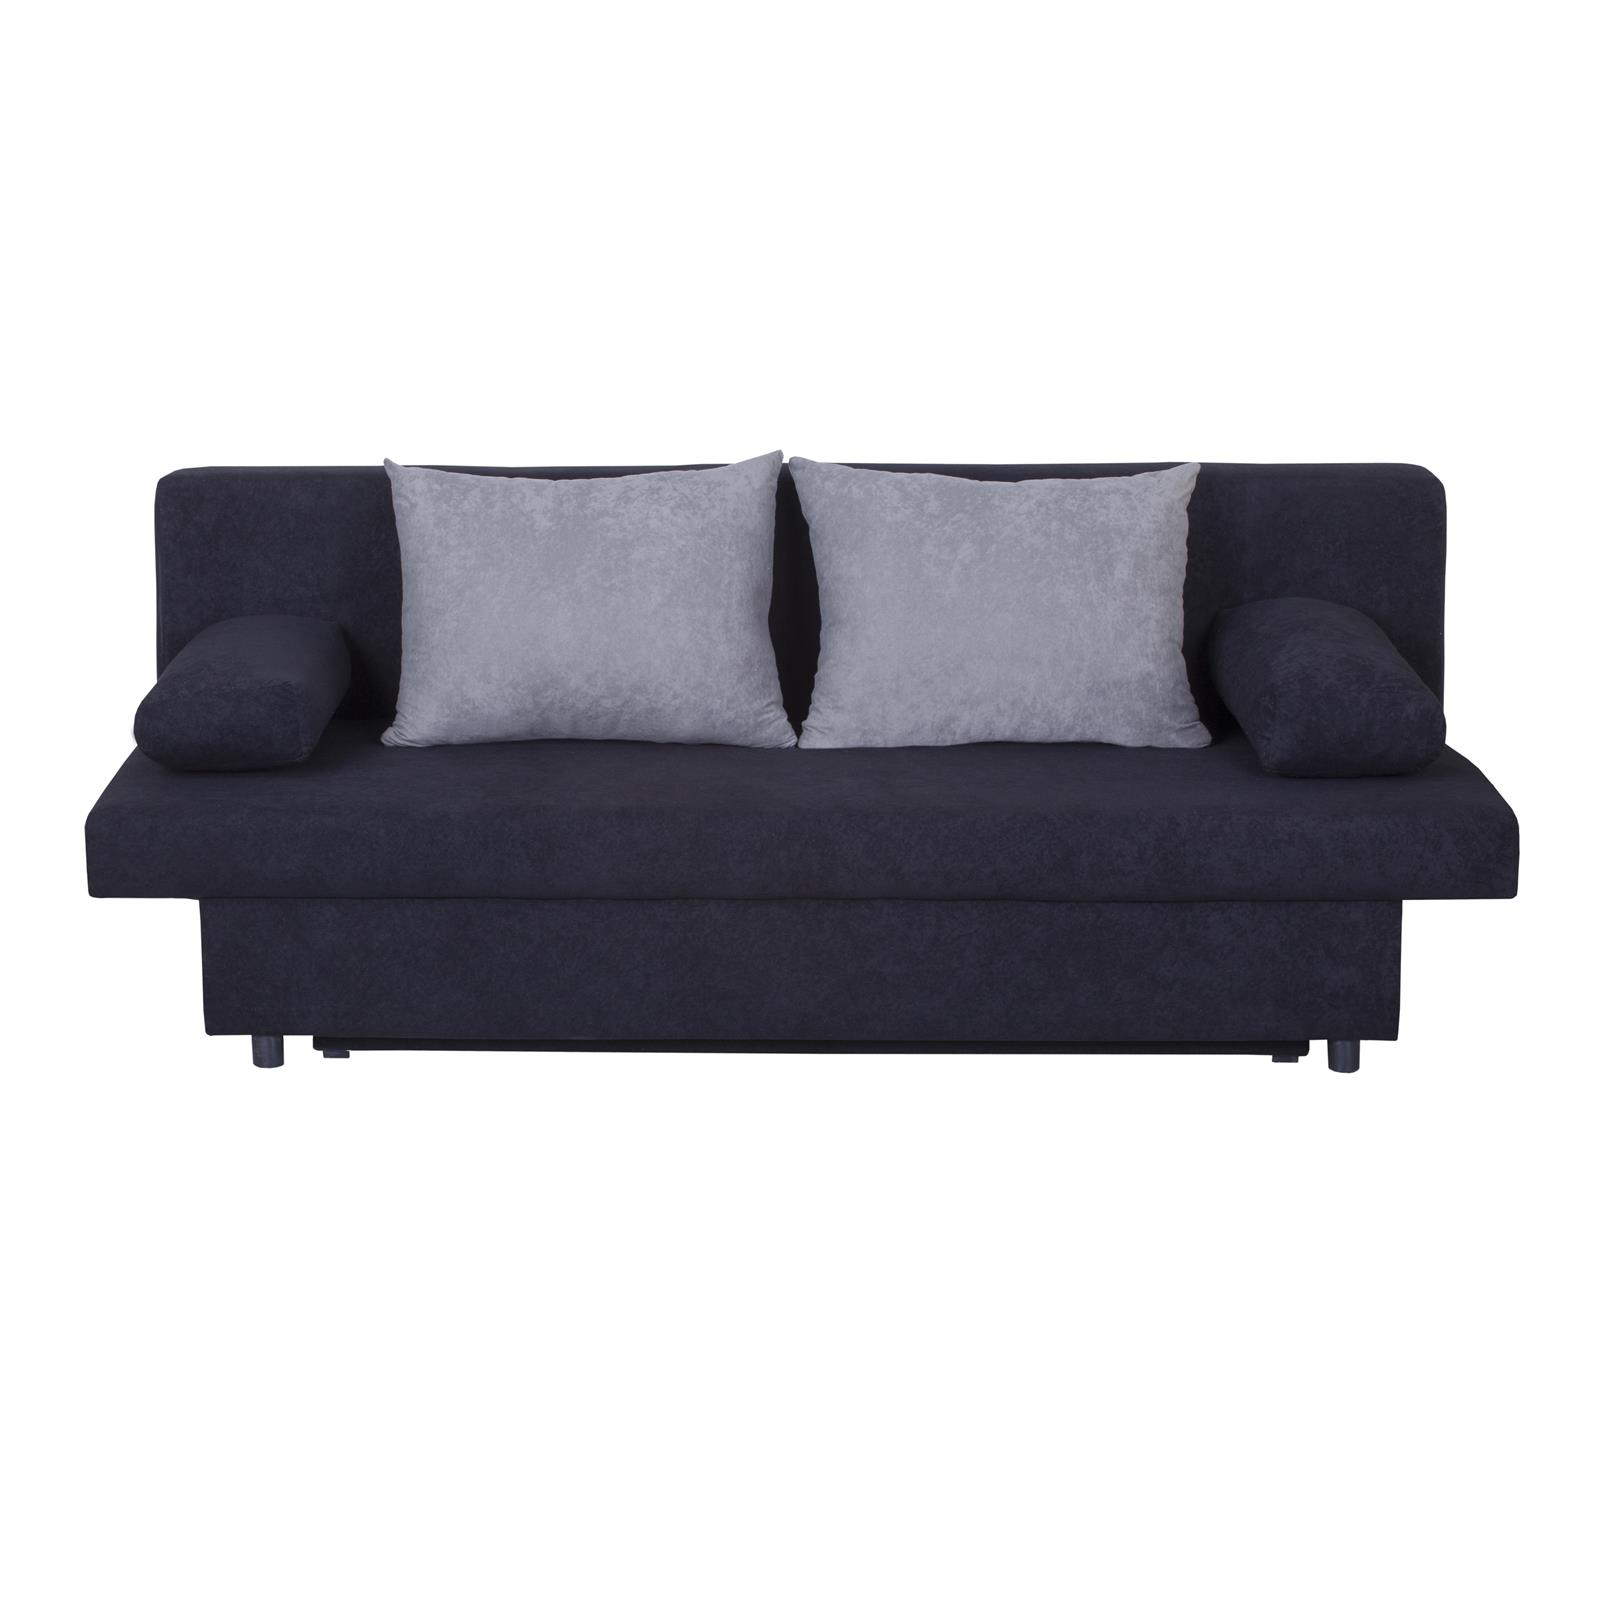 schlafsofa mit bettkasten ikea schlafsofa mit bettkasten. Black Bedroom Furniture Sets. Home Design Ideas